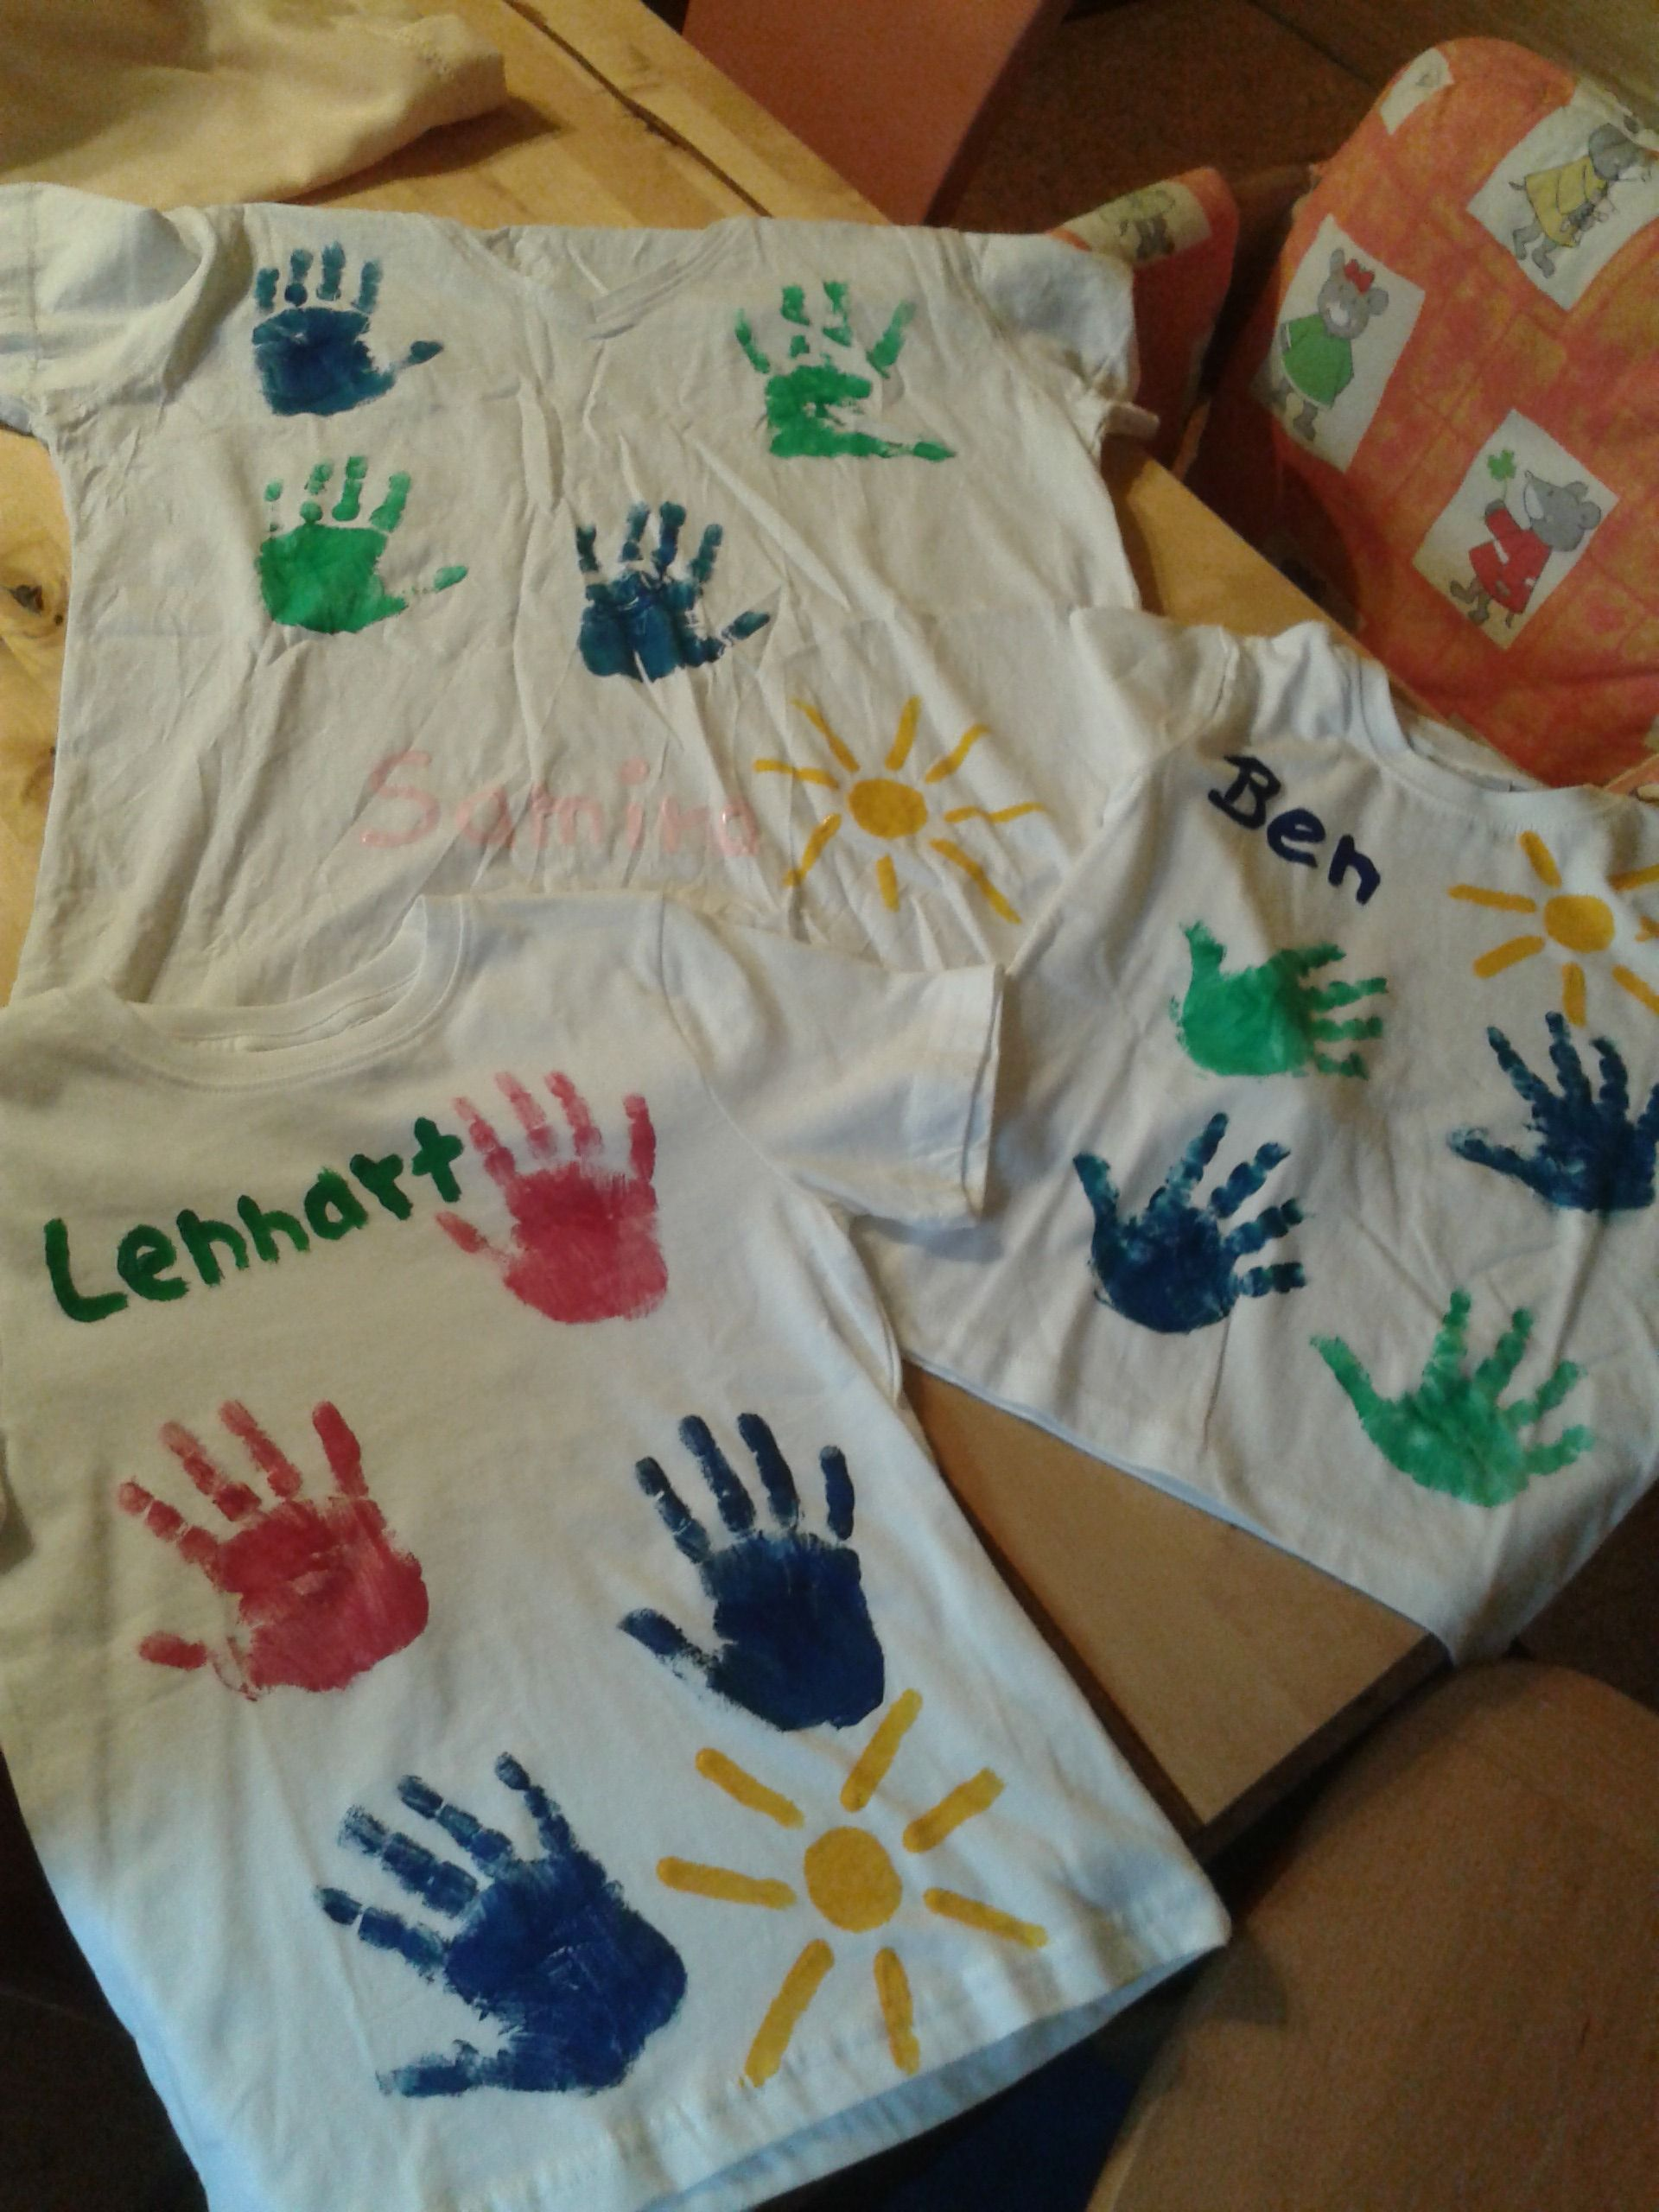 Kreative, individuelle T-Shirts